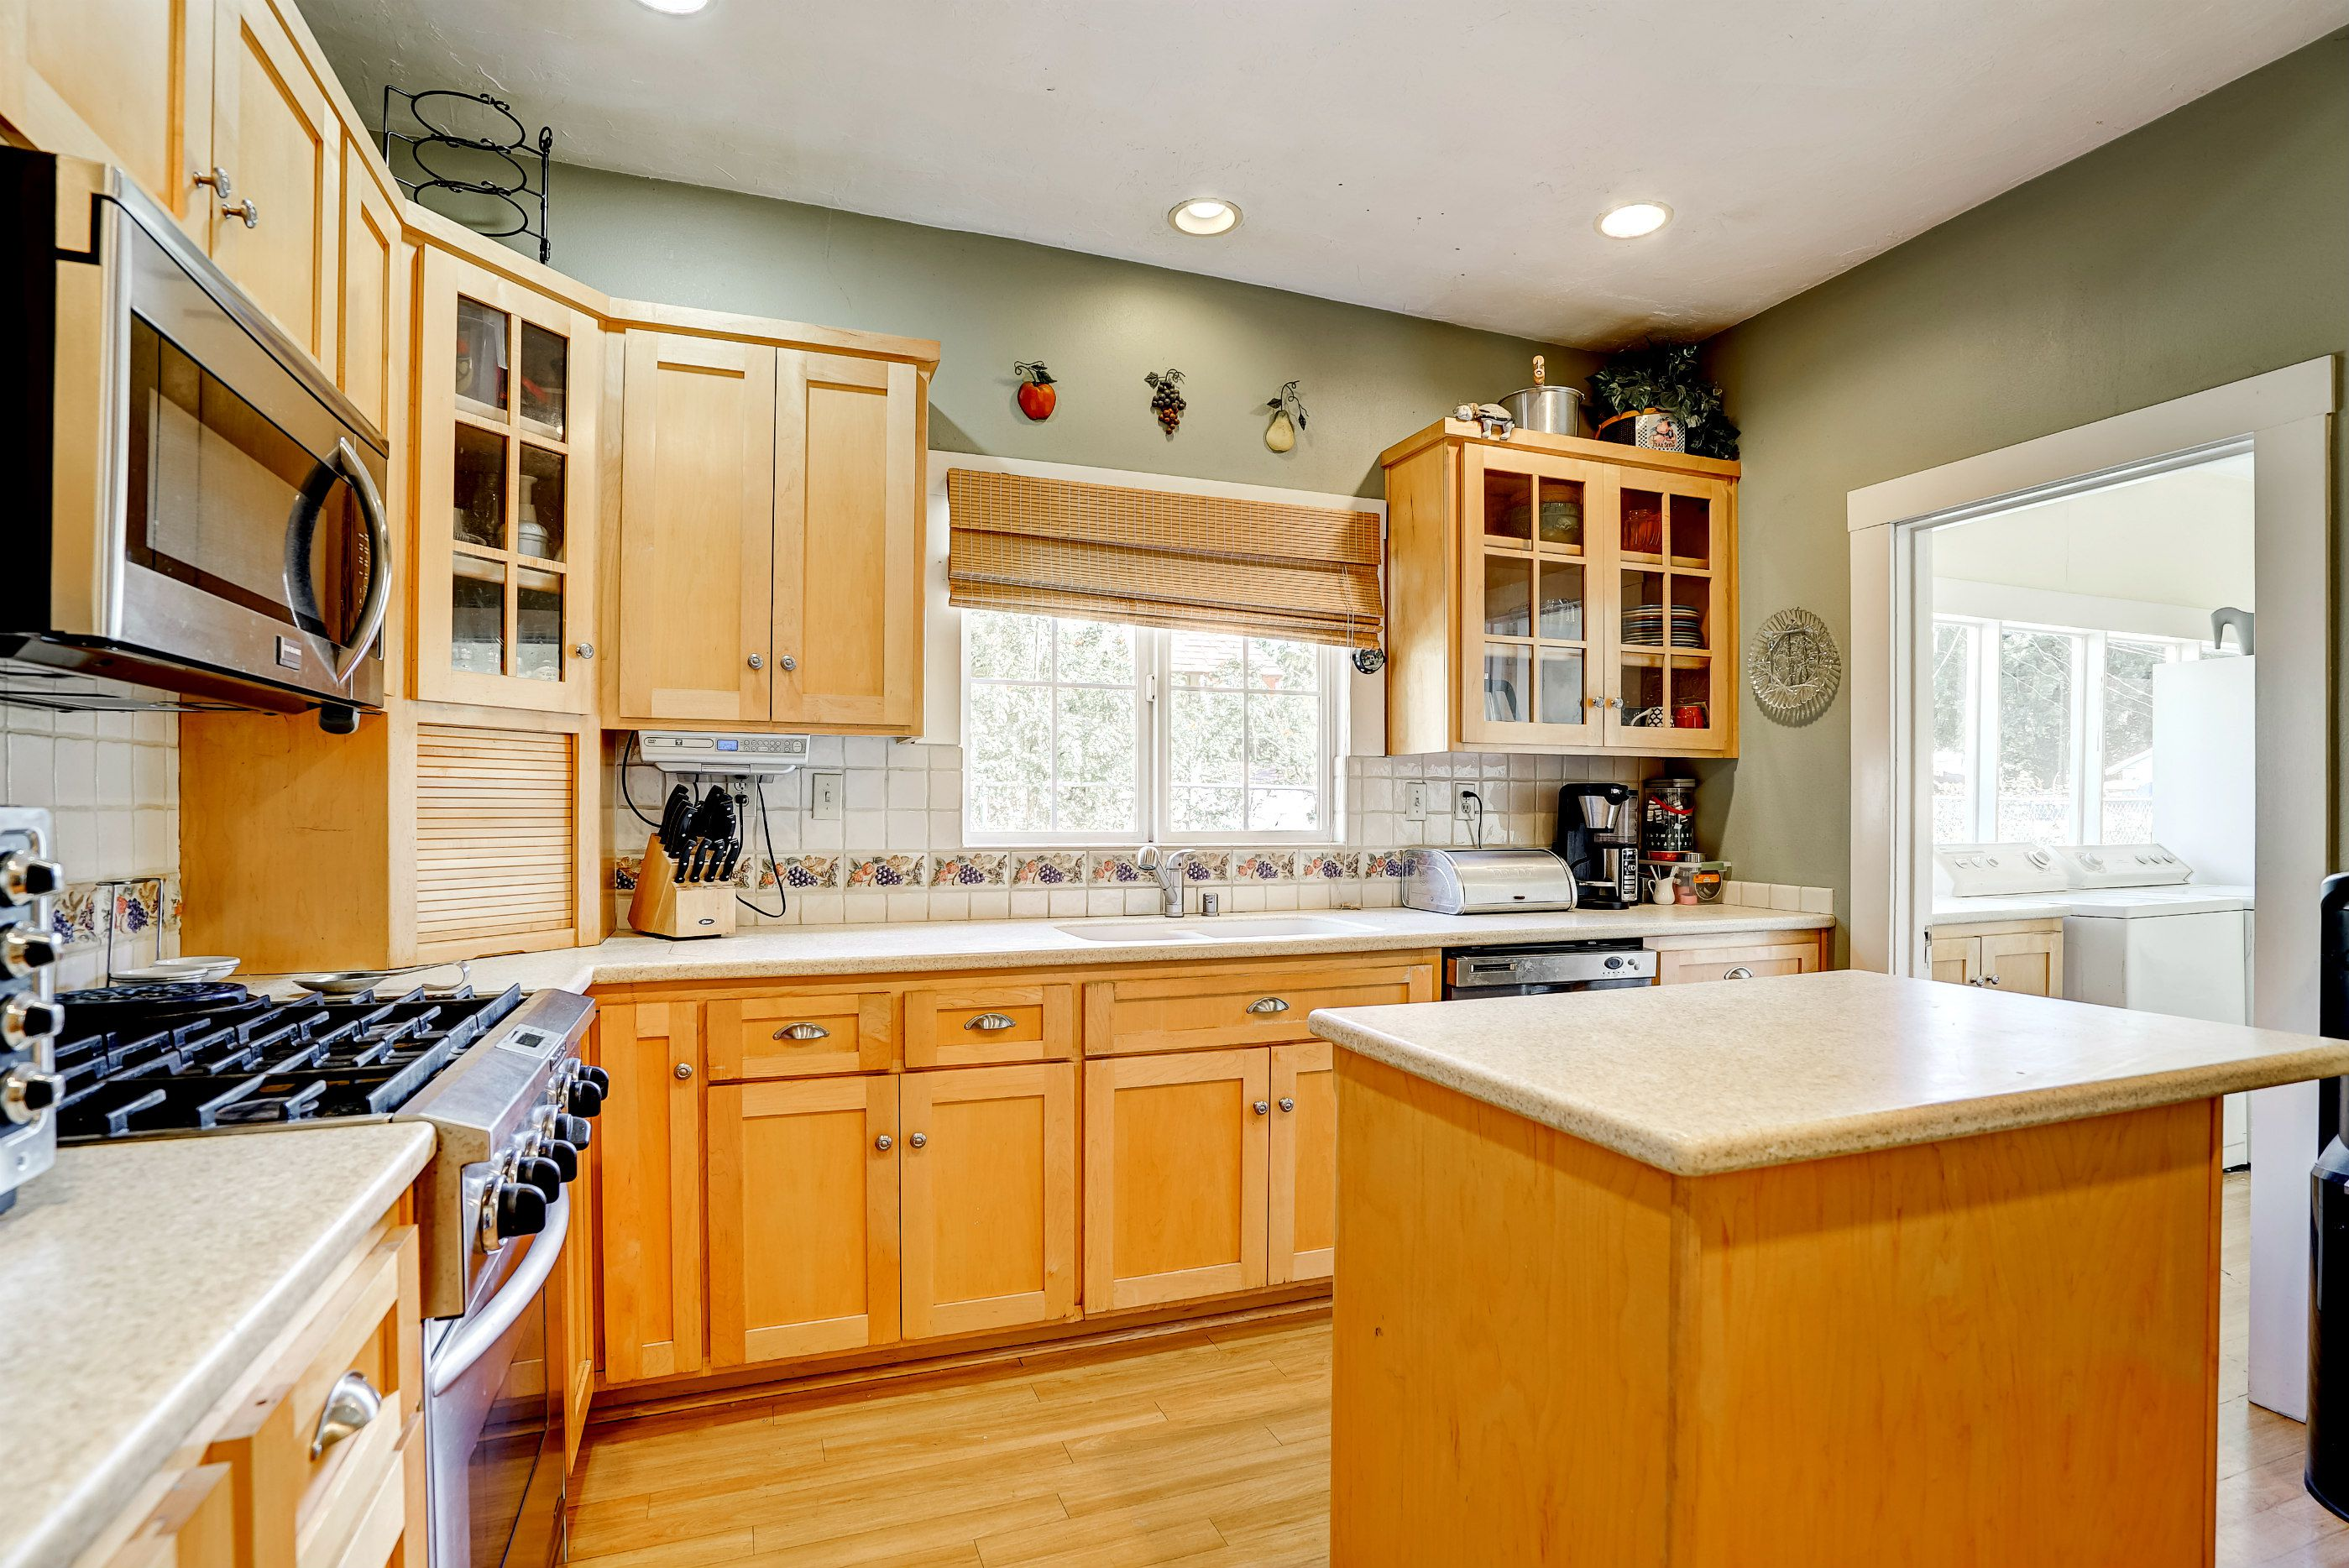 Remodeled kitchen with Corian counters and preparation island.